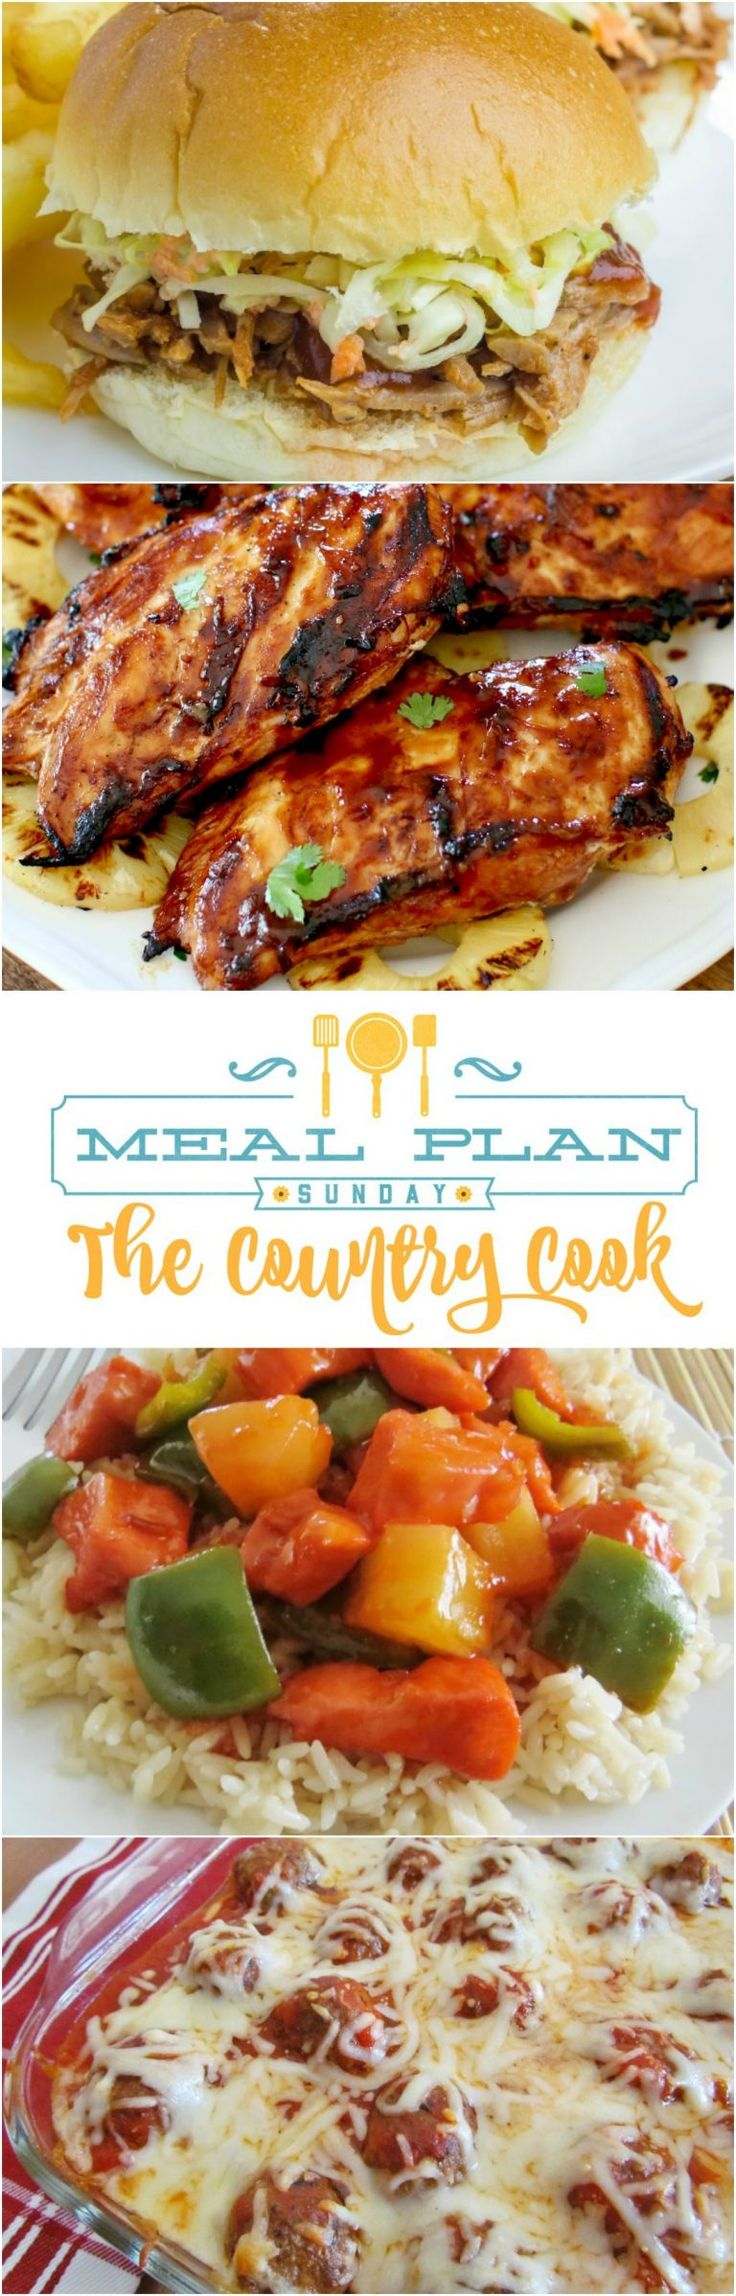 Meal Plan Sunday recipes include: Baked Sweet and Sour Chicken, Meatball Sub Casserole, Crock Pot Pulled Pork, Grilled Hawaiian BBQ Chicken, Mississippi Pot Roast, 7Up Cake and more!